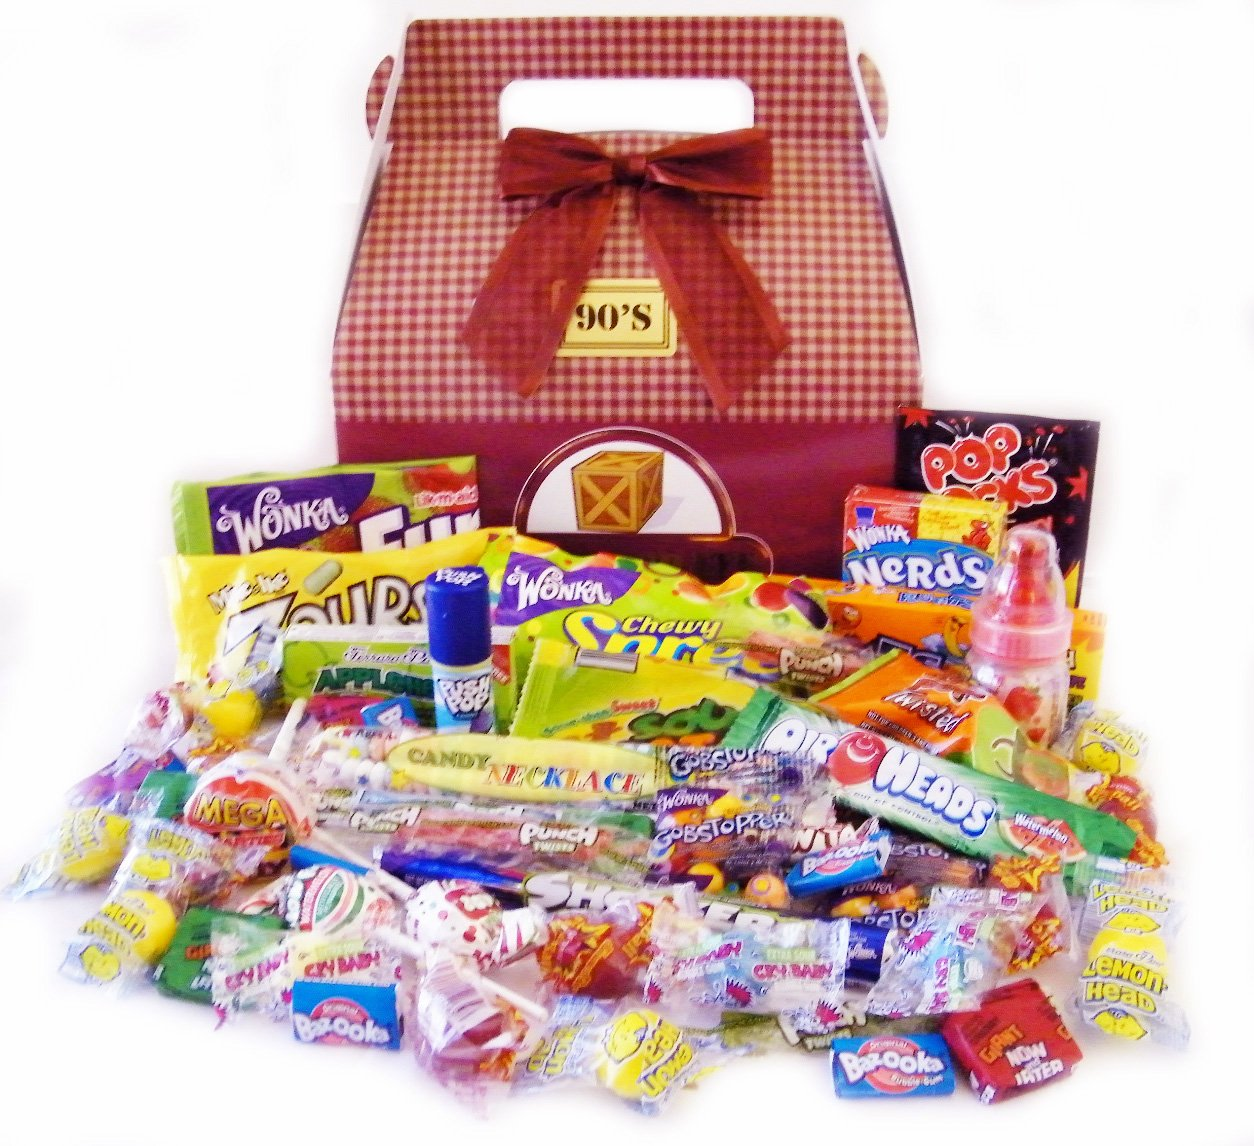 Amazon.com : Candy Crate 1940's Retro Candy Gift Box ...